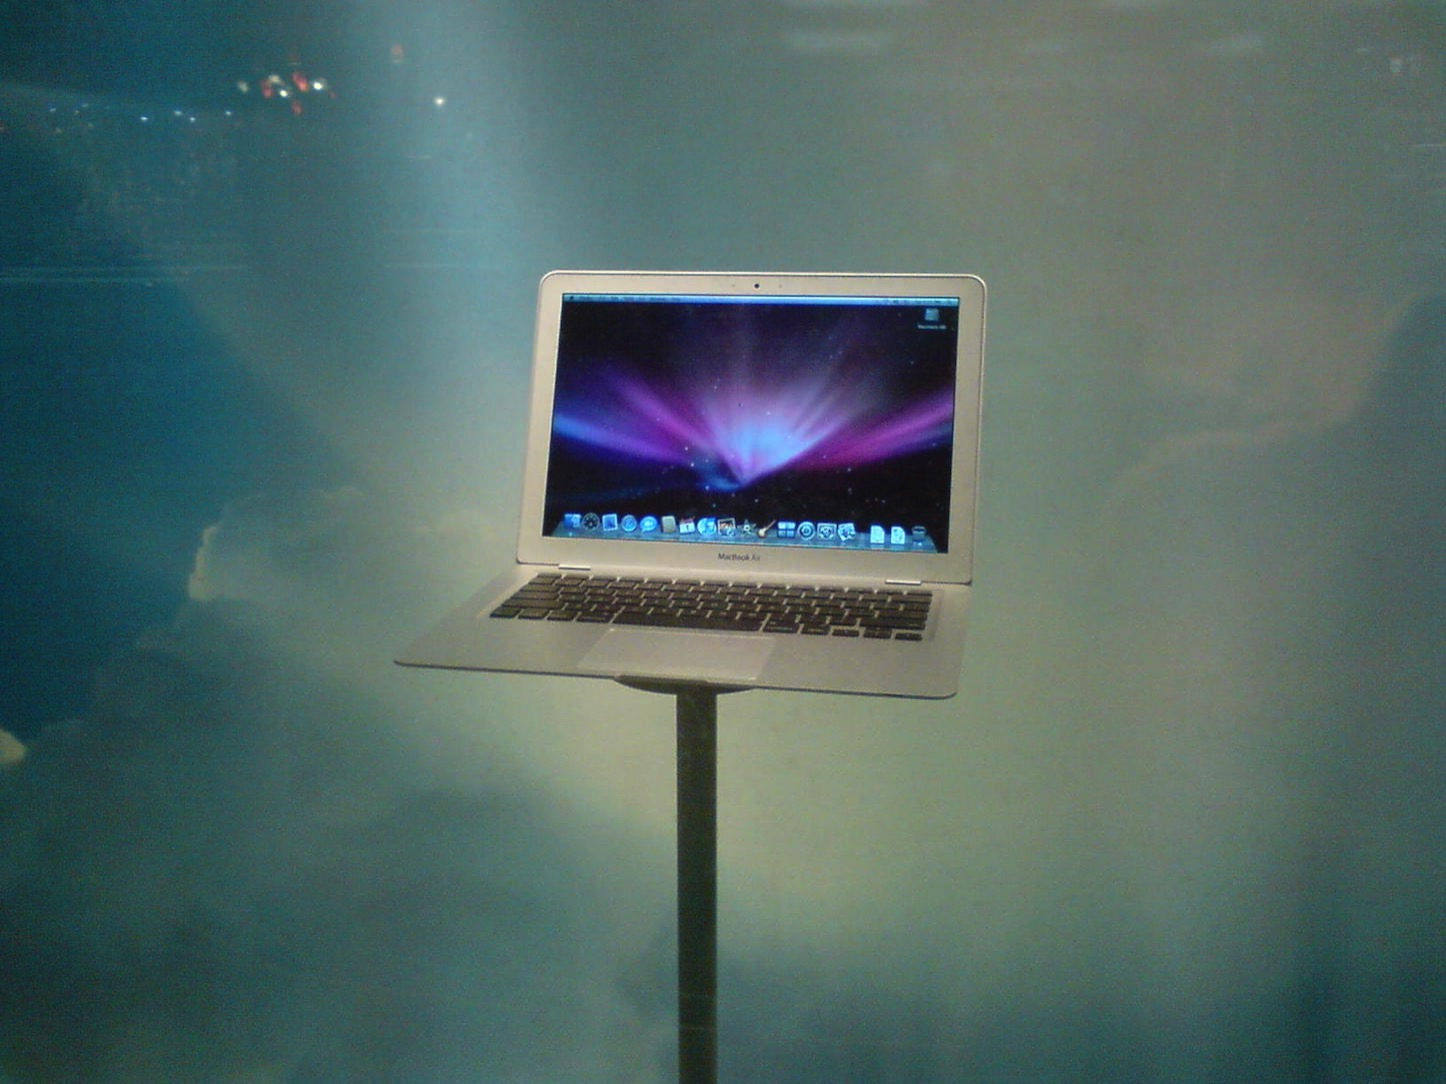 Macbook air old model standing on table